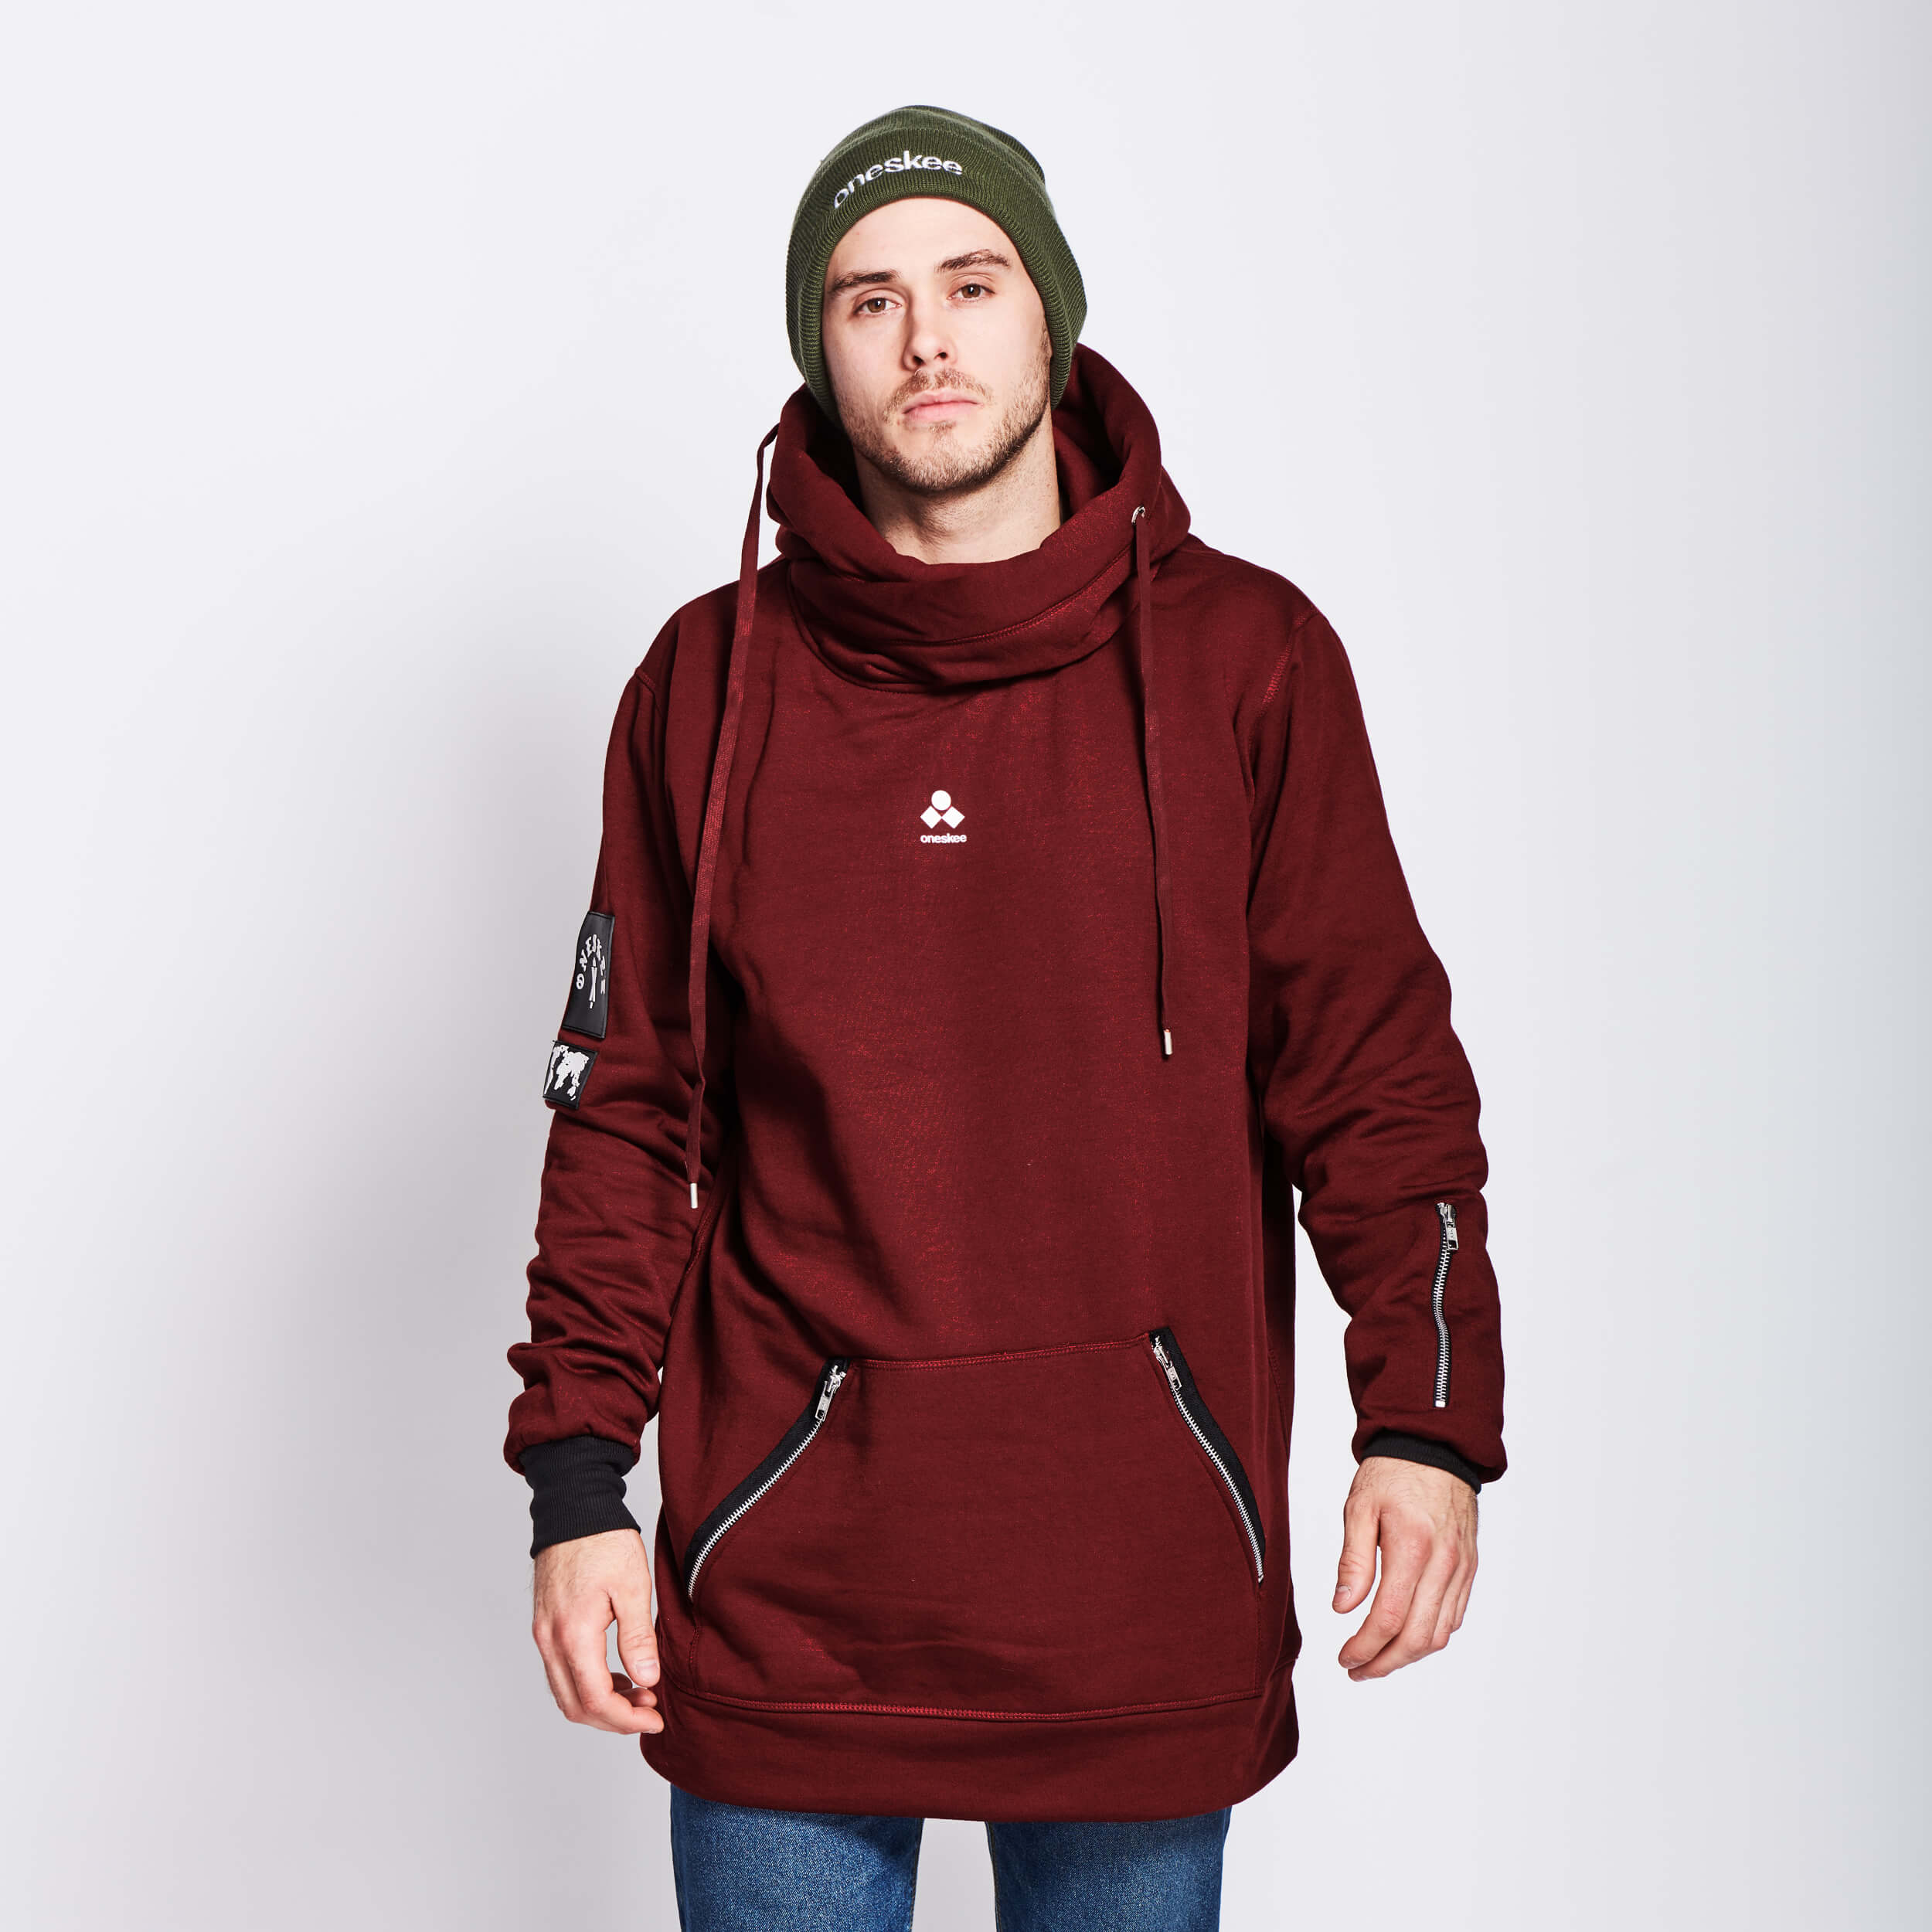 Men's Technical X-Neck Hoodie  - Burgundy image 5